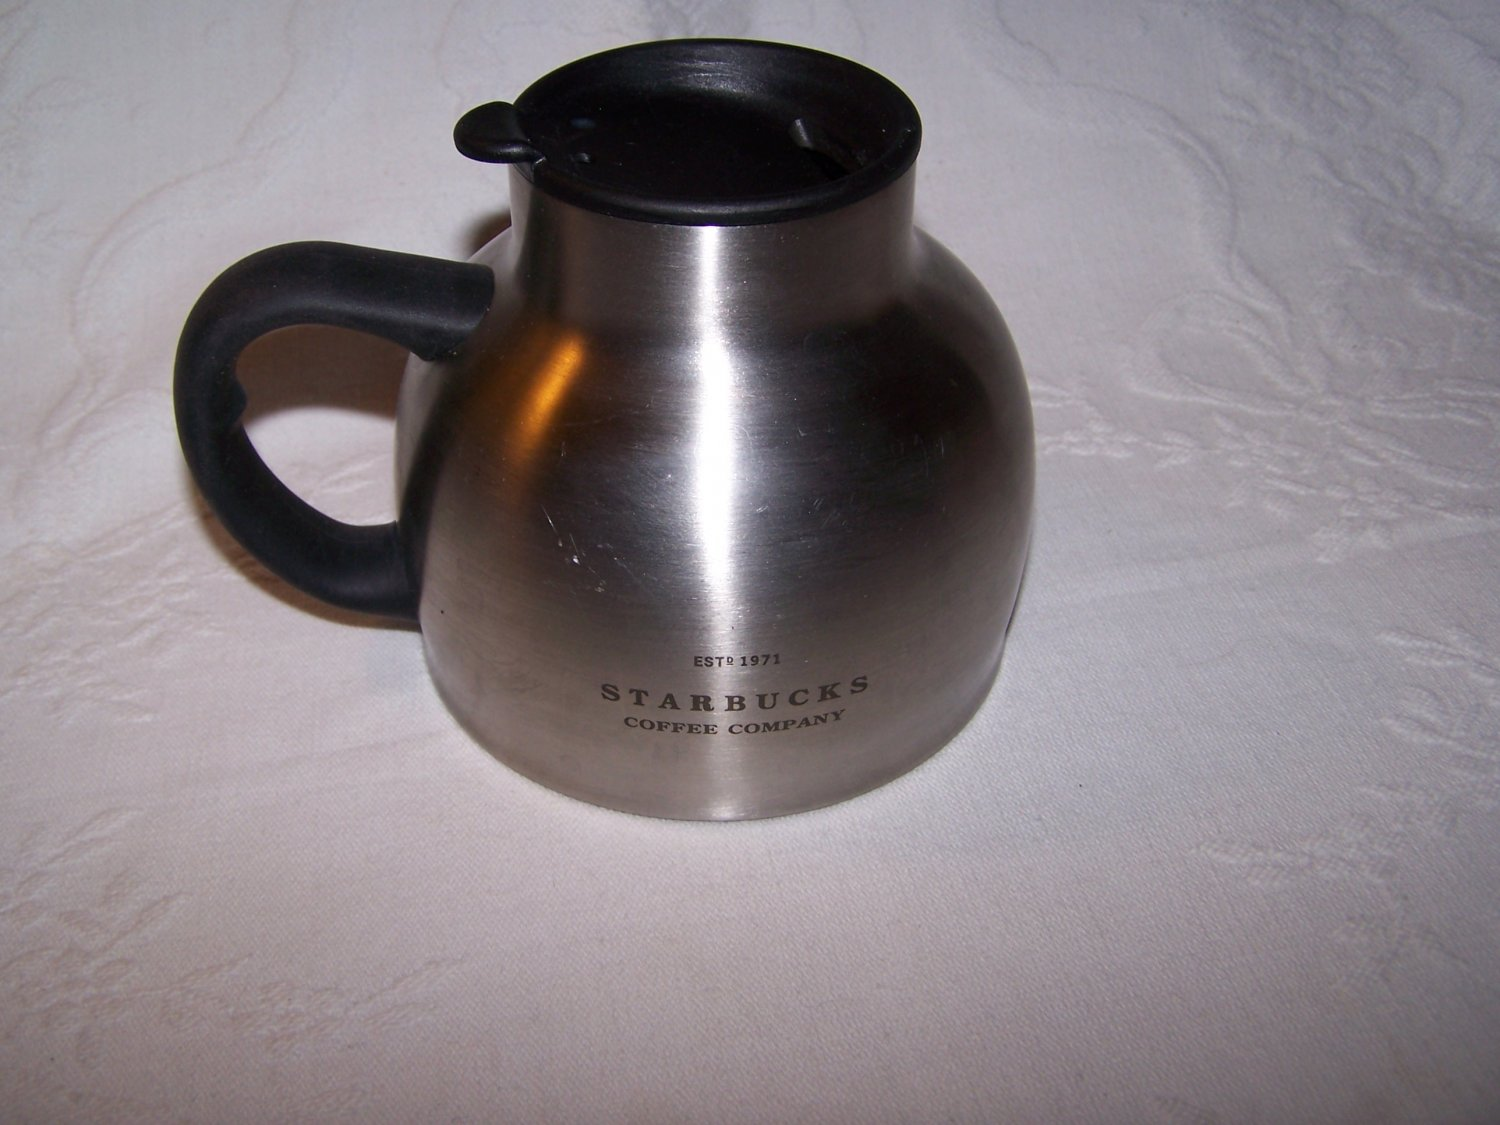 Criticising Starbucks stainless steel chubby mug